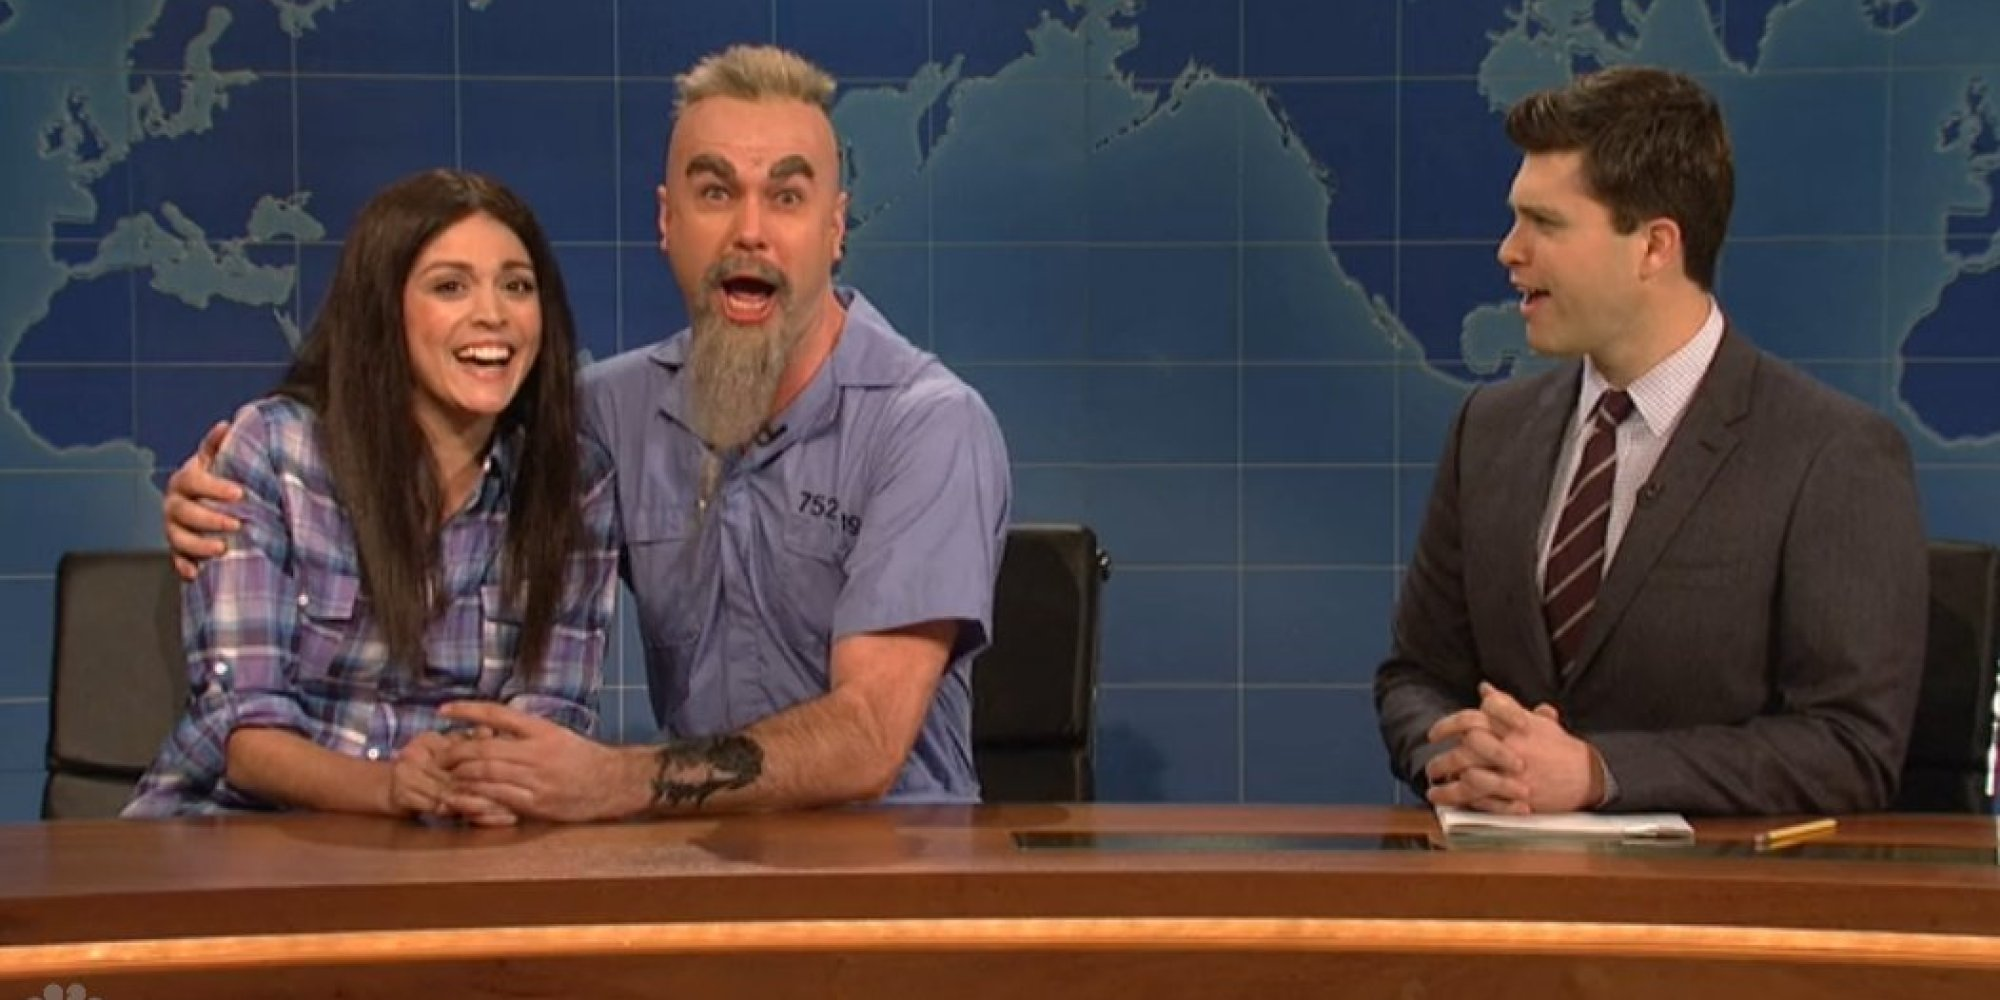 SNL' Brings Charles Manson And Star Burton Together On 'Weekend ...